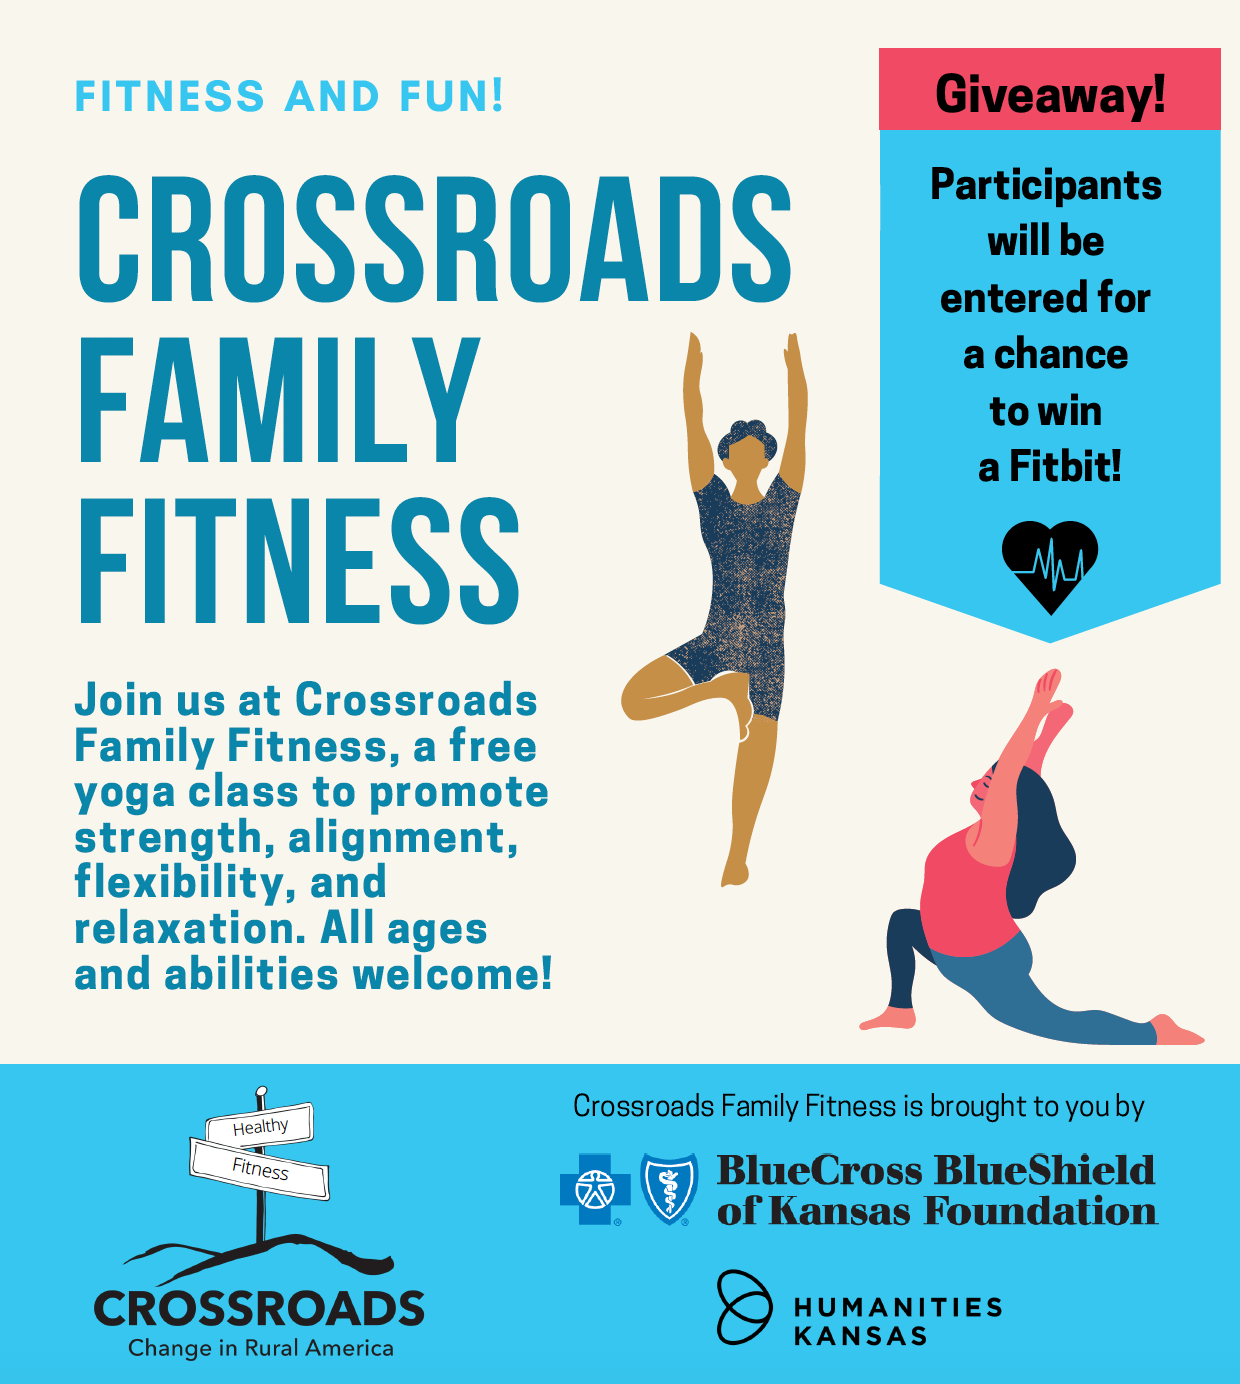 Crossroads Family Fitness Event Image